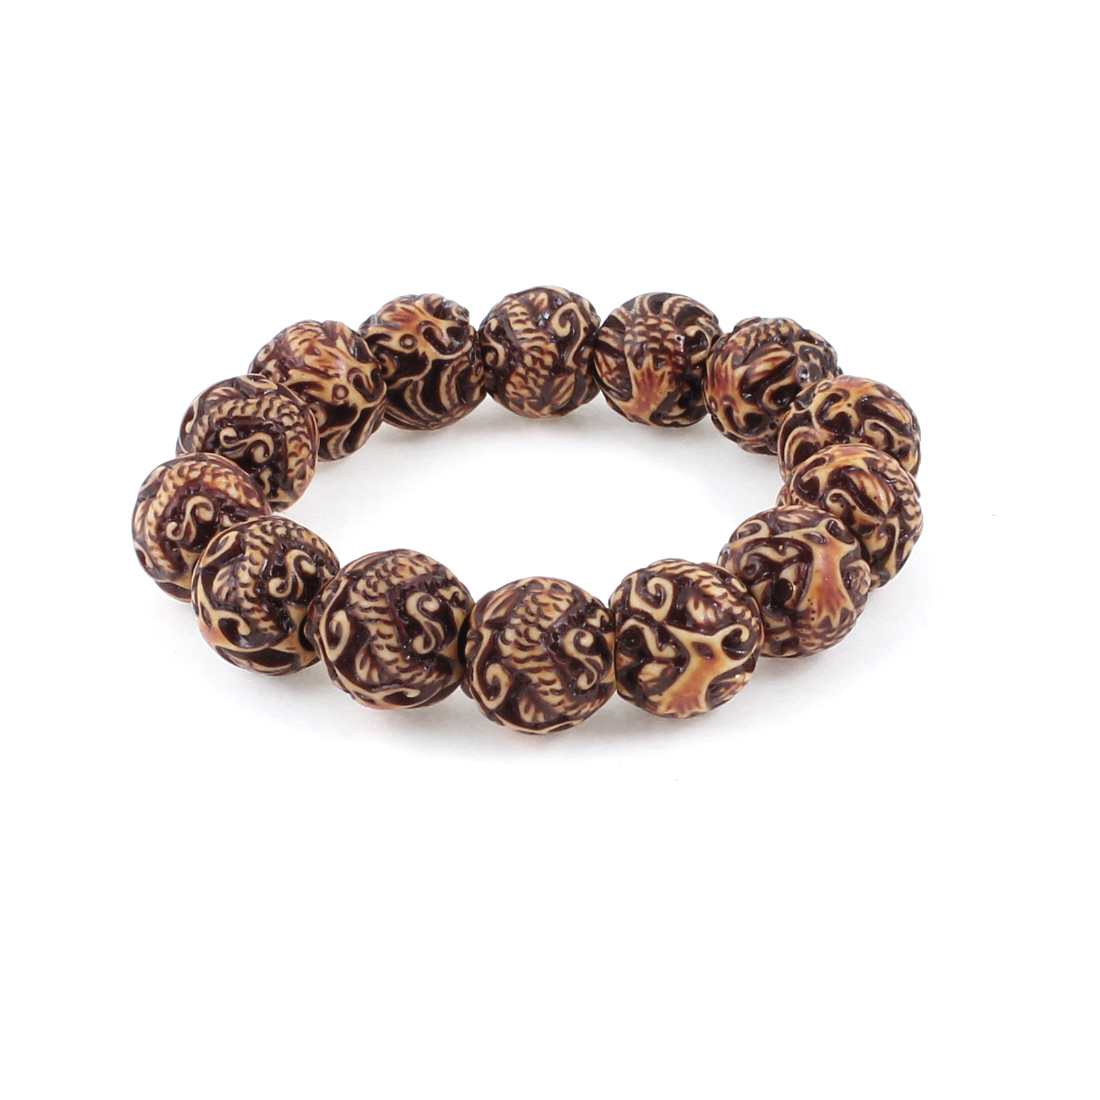 Chinese Characters Carving Plastic Bead Bracelet Brown Chocolate Color for Unisex